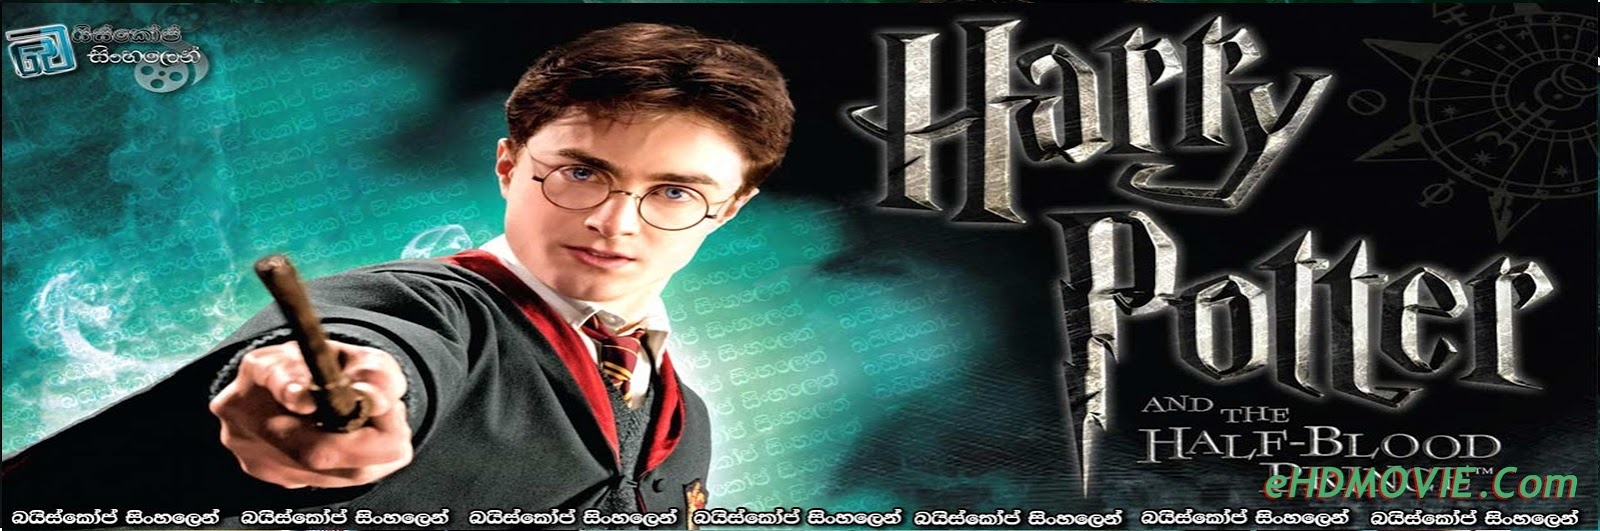 Harry Potter and the Half-Blood Prince 2009 Full Movie English 720p – 480p ORG BRRip 500MB - 1.2GB ESubs Free Download